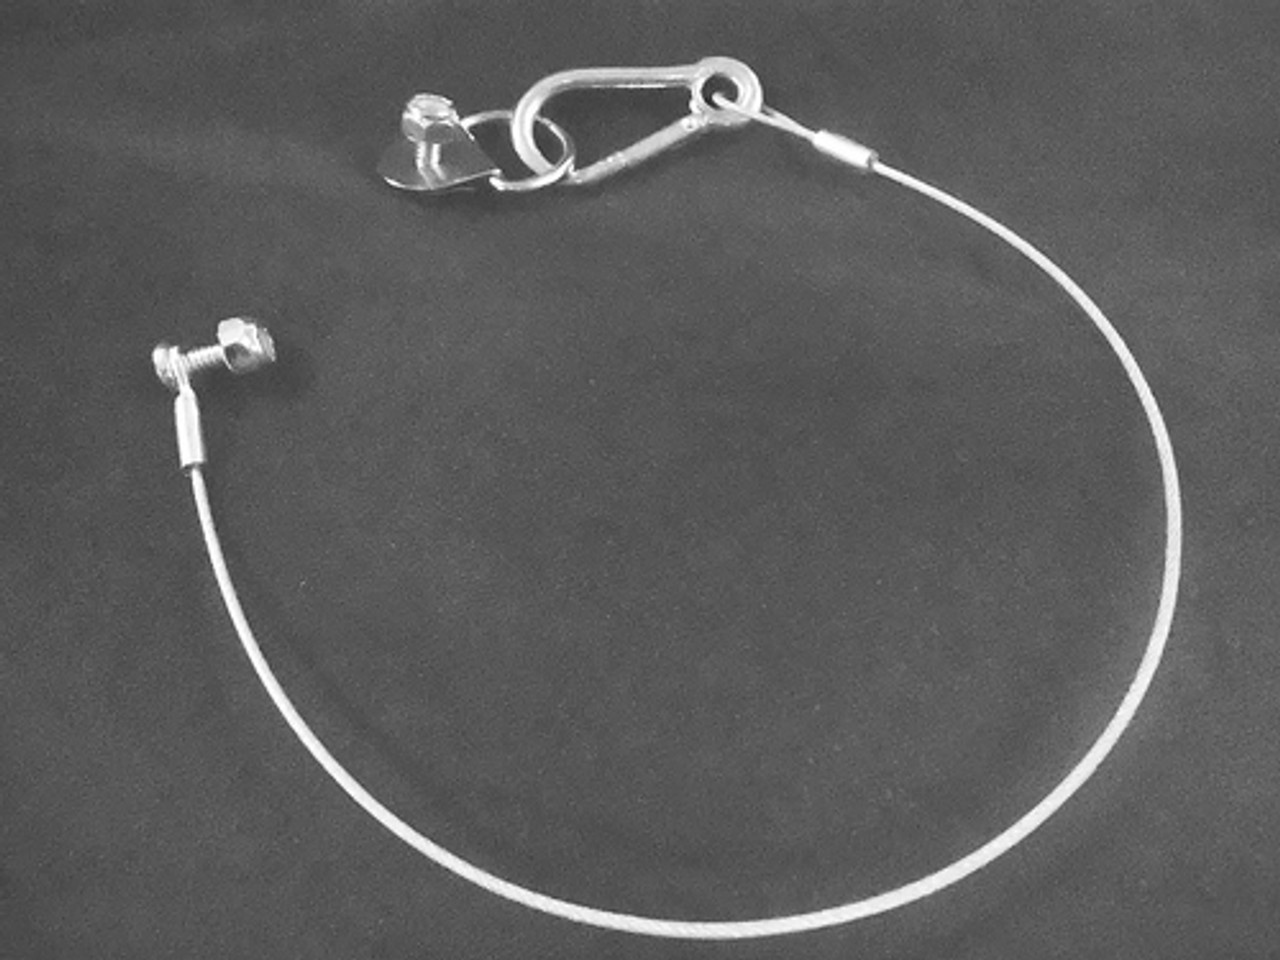 Optional Lid Cable Available.